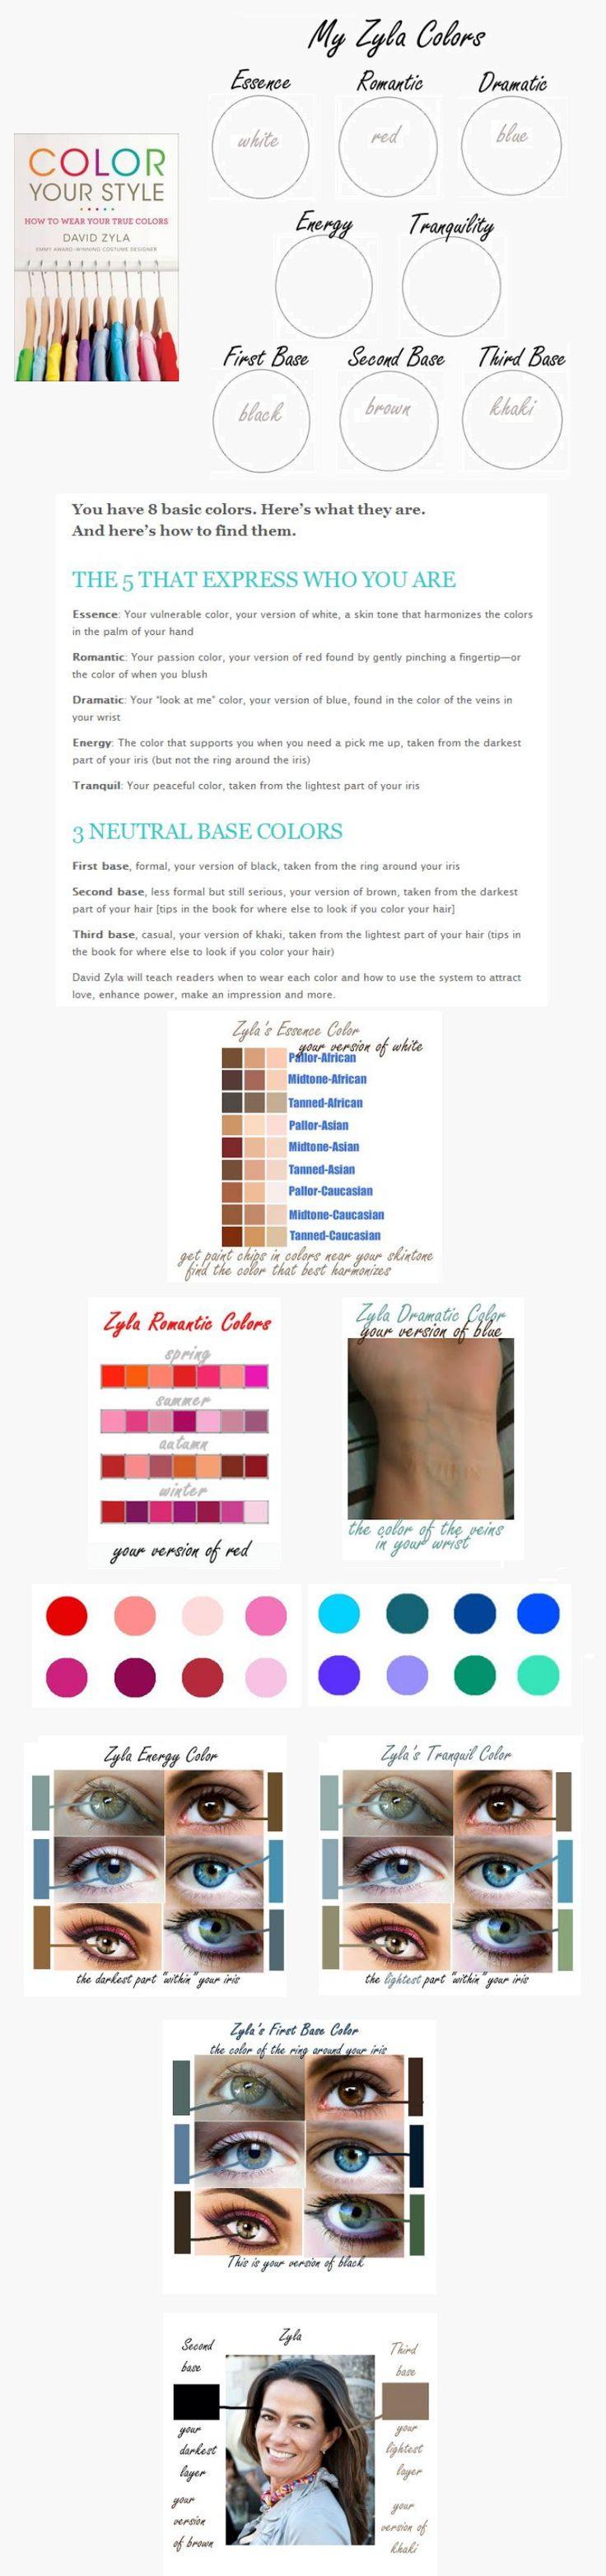 This explains how to find your color pallette for both clothes and makeup. If you print it, you can make notes on this as you go along.